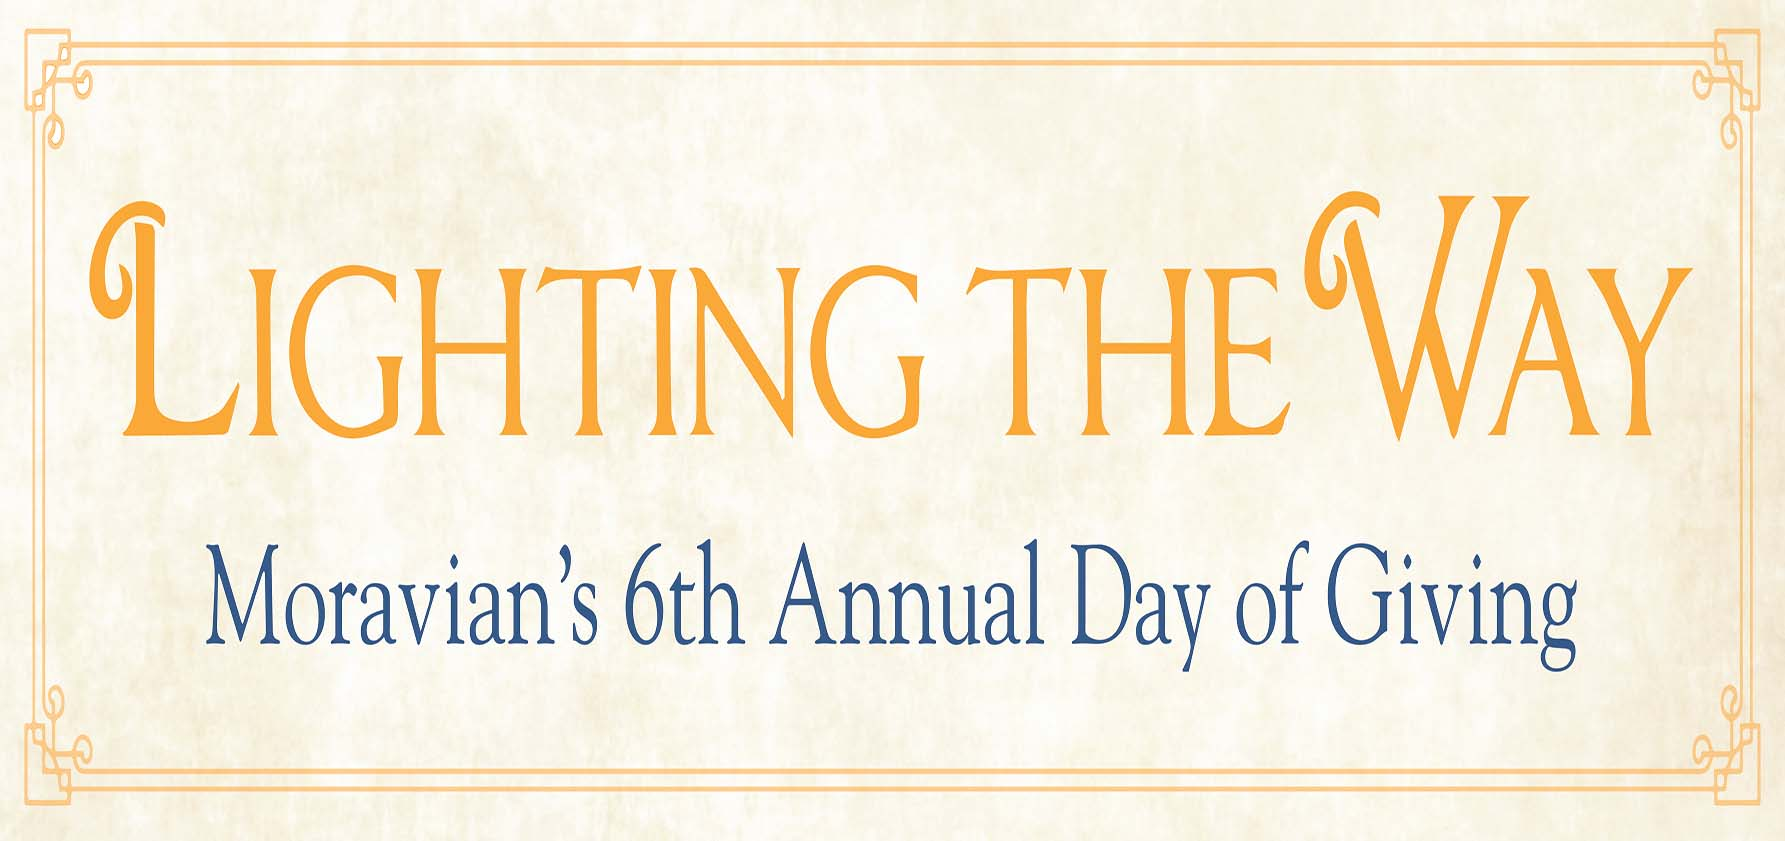 Lighting the Way logo for Moravian's 6th Annual Day of Giving